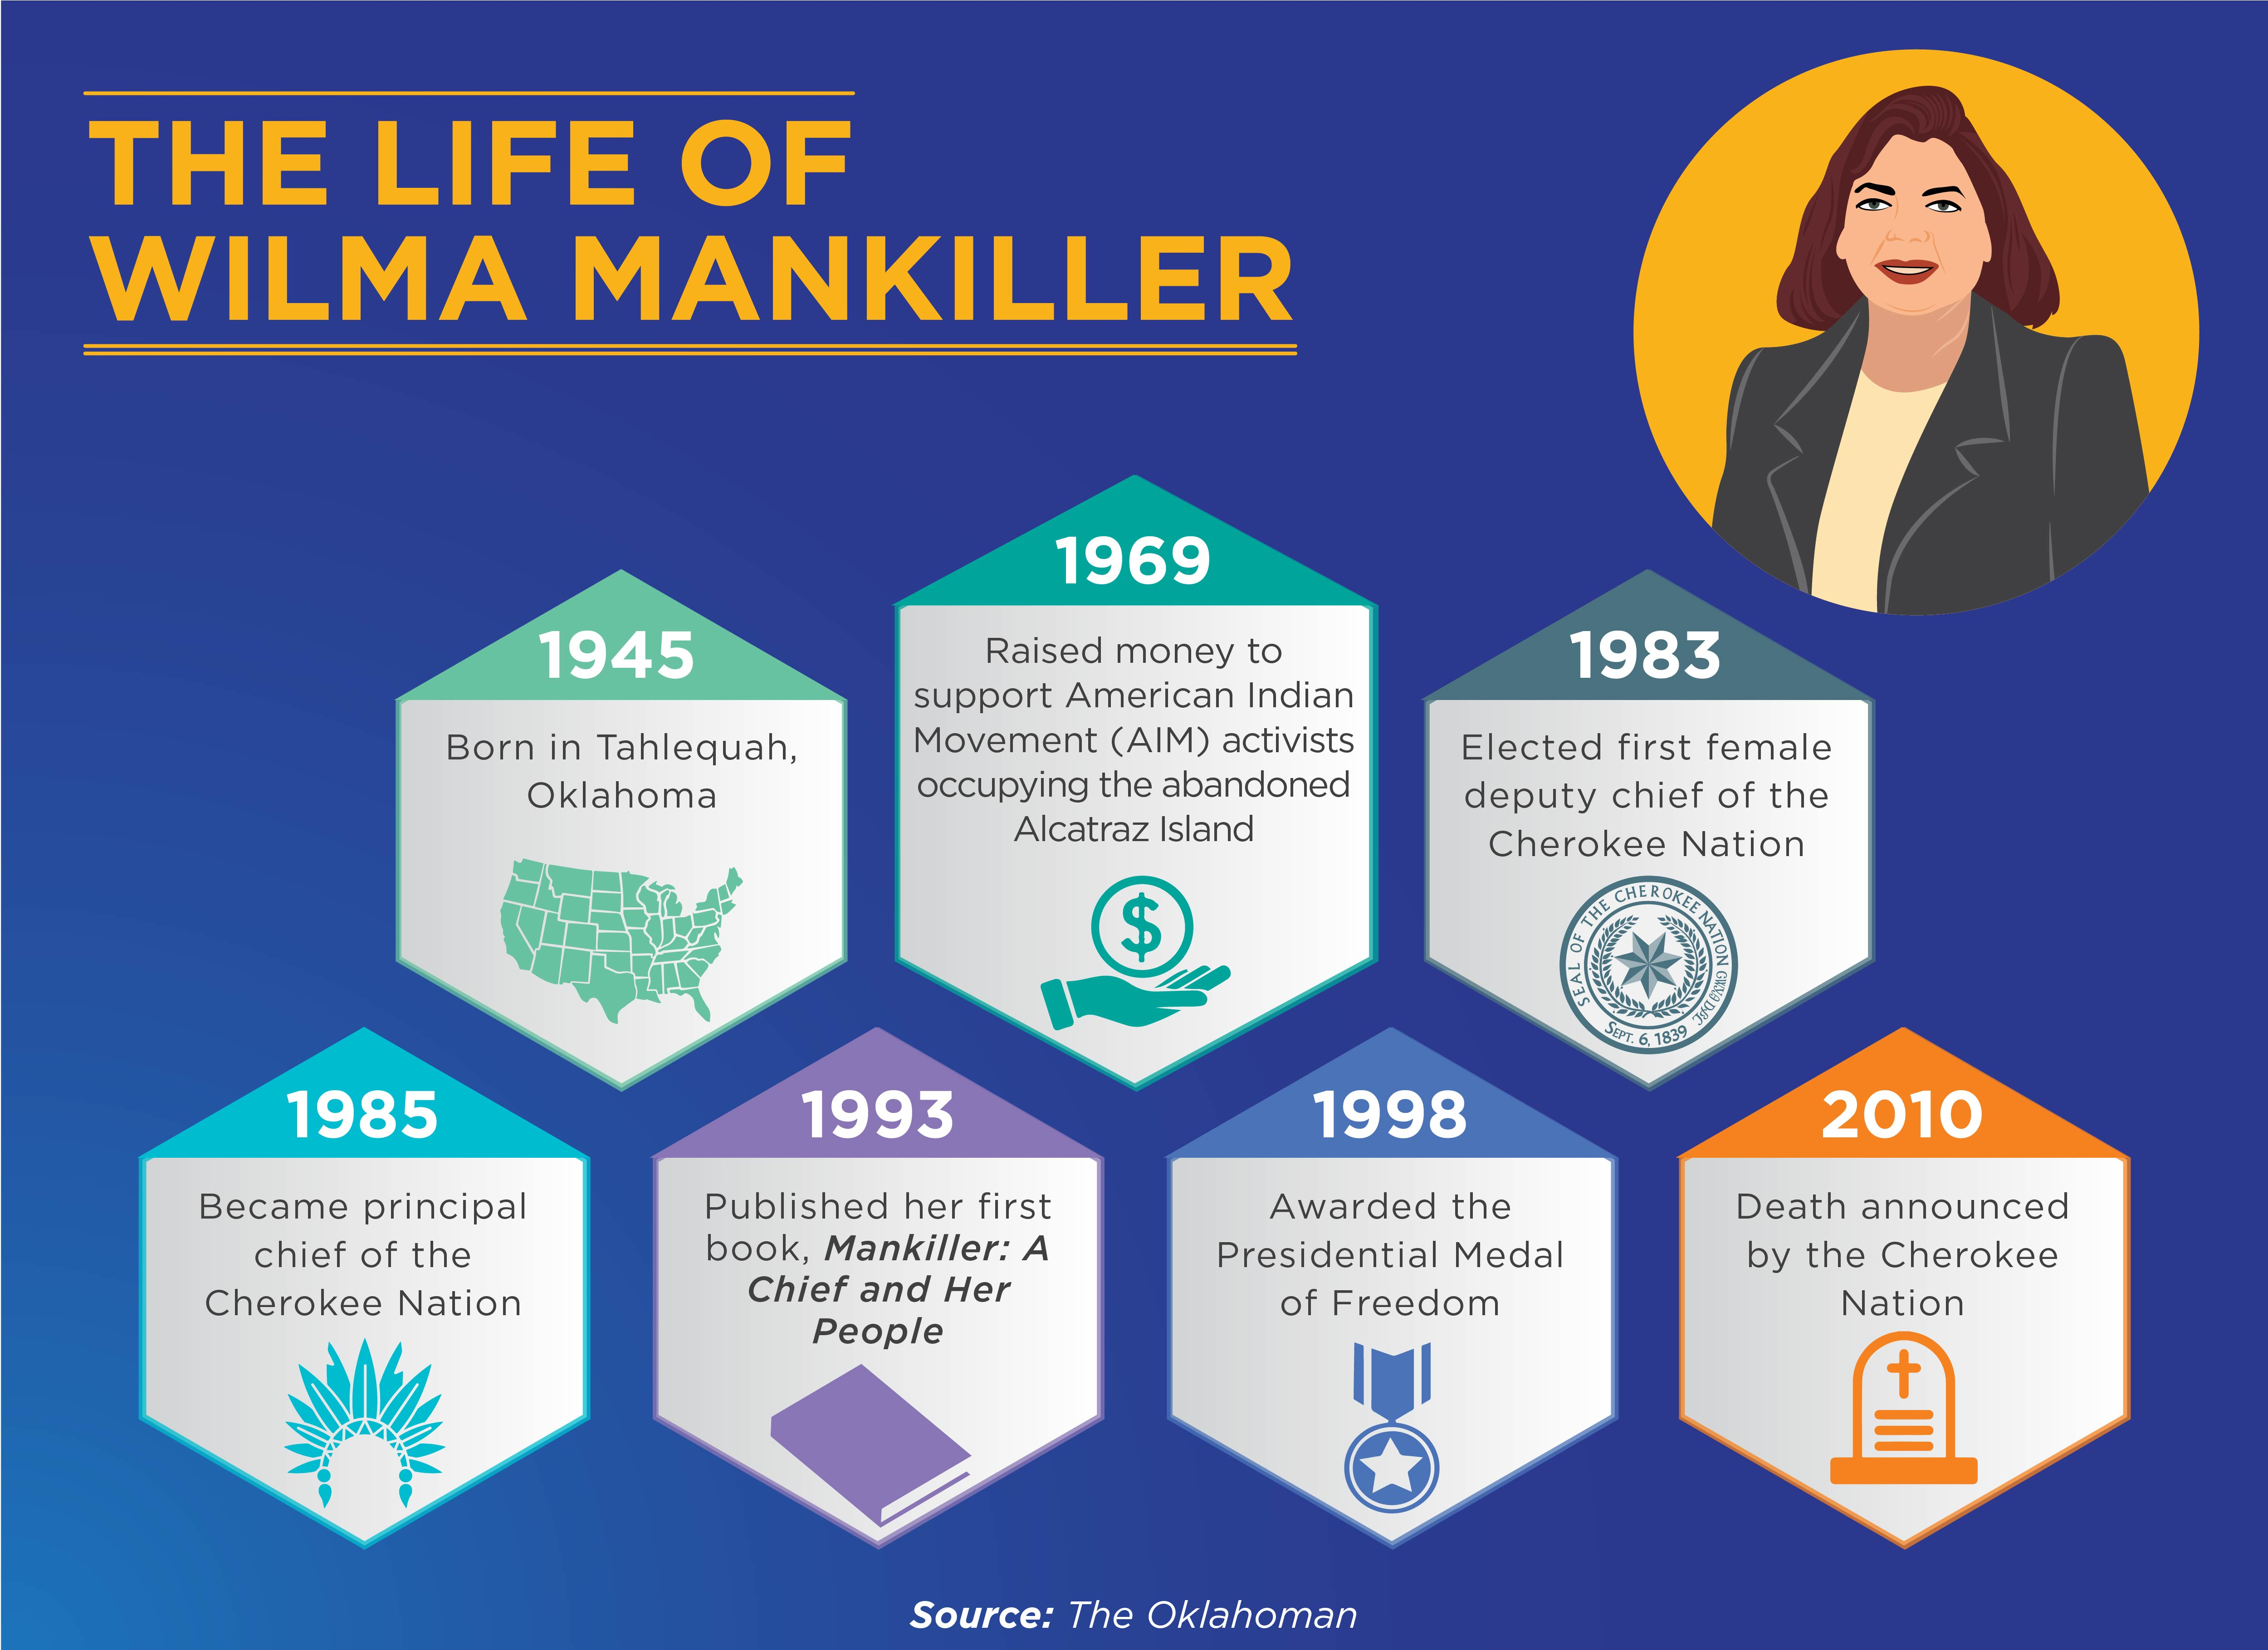 Wilma Mankiller was born in 1945 and was the first female chief of the Cherokee Nation.